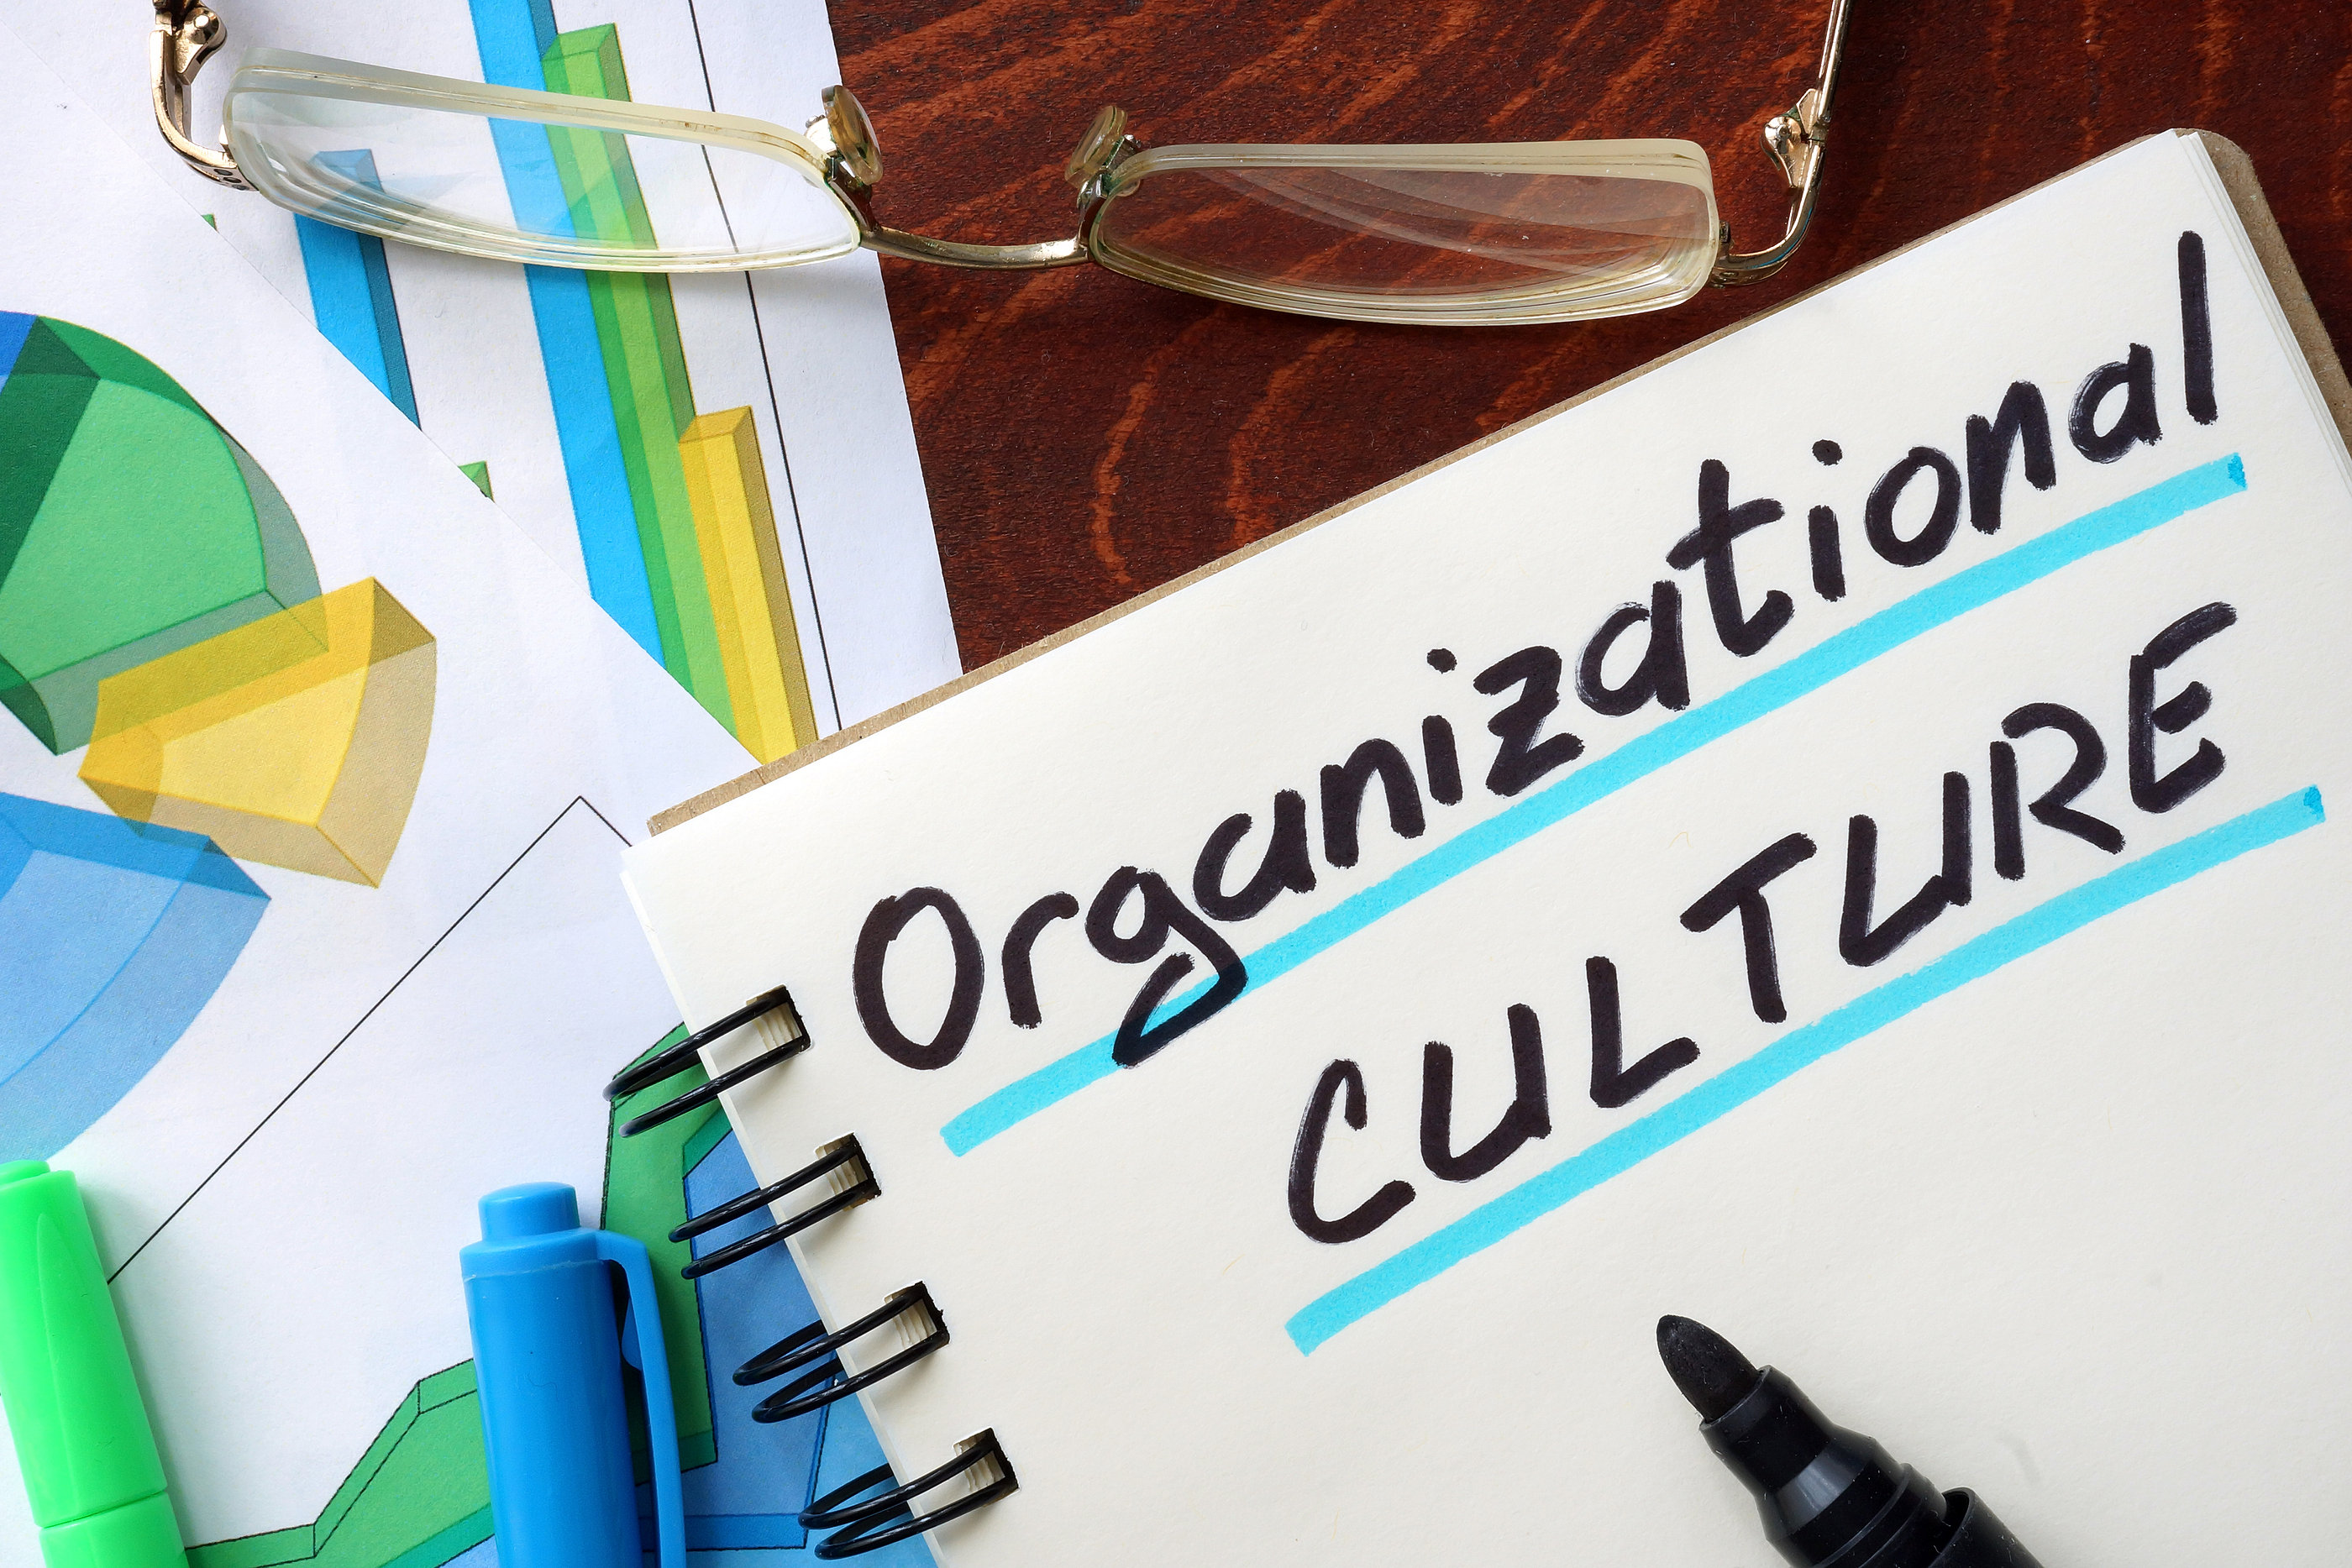 research paper on organizational culture and leadership Research paper in team performance management: perceptions of organizational culture, leadership effectiveness and personal effectiveness across six countries.